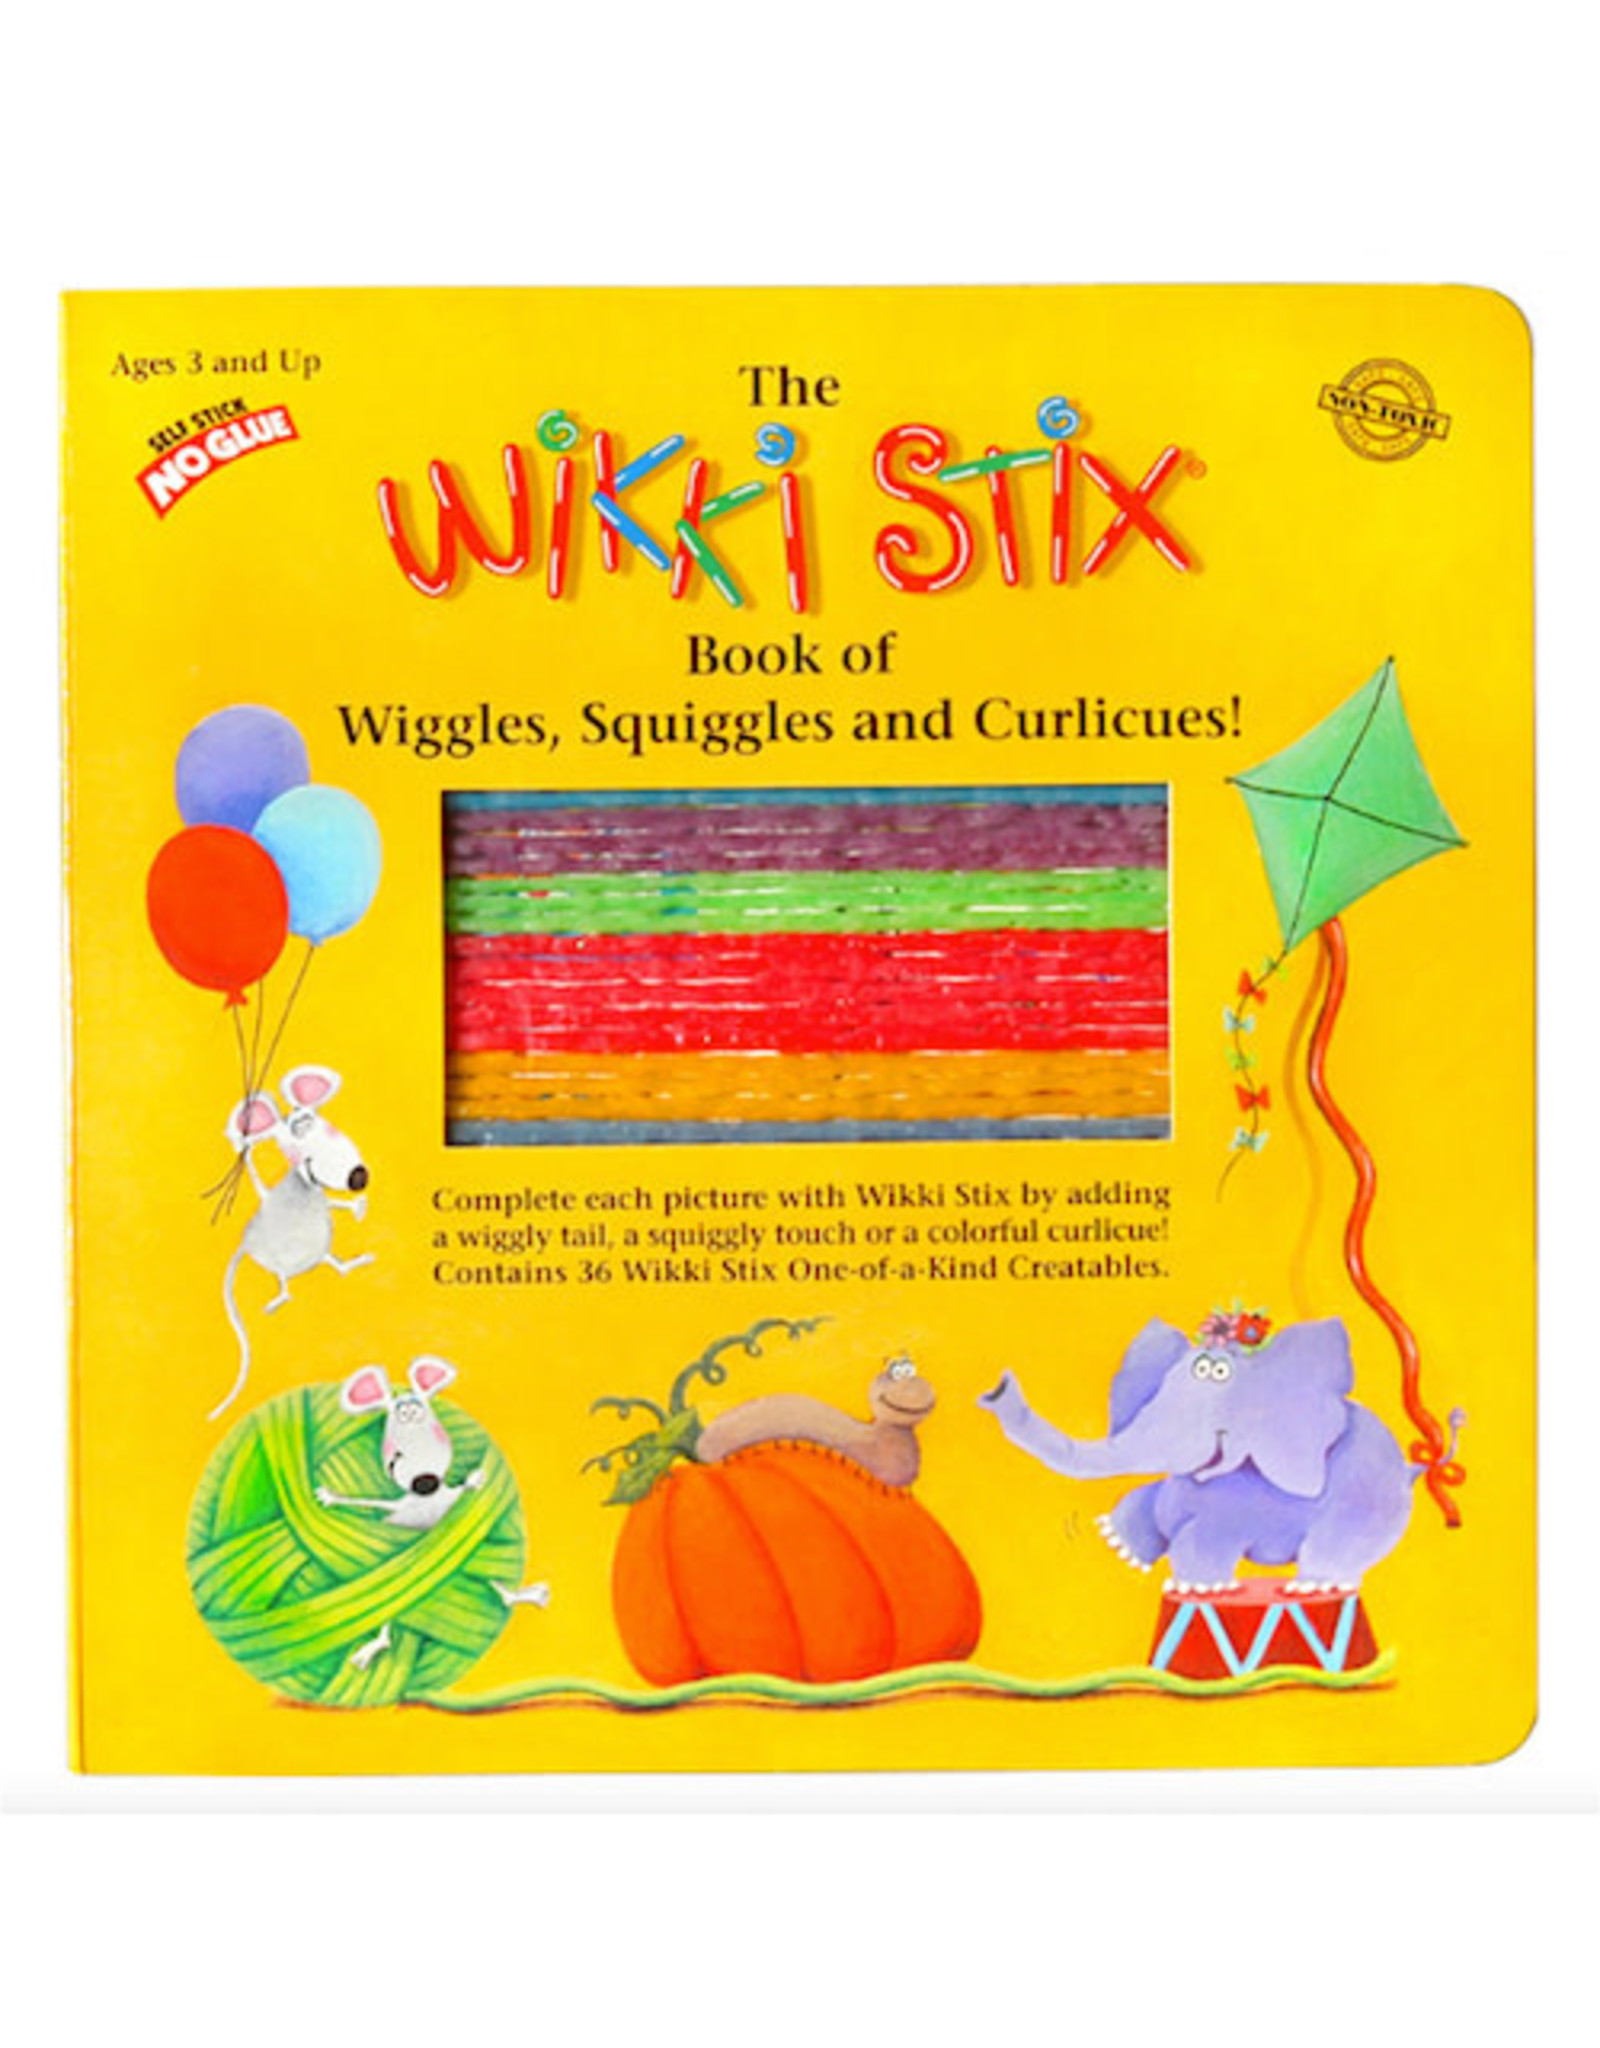 Wikki Stix BOOK OF WIGGLES, SQUIGGLES AND CURLICUES